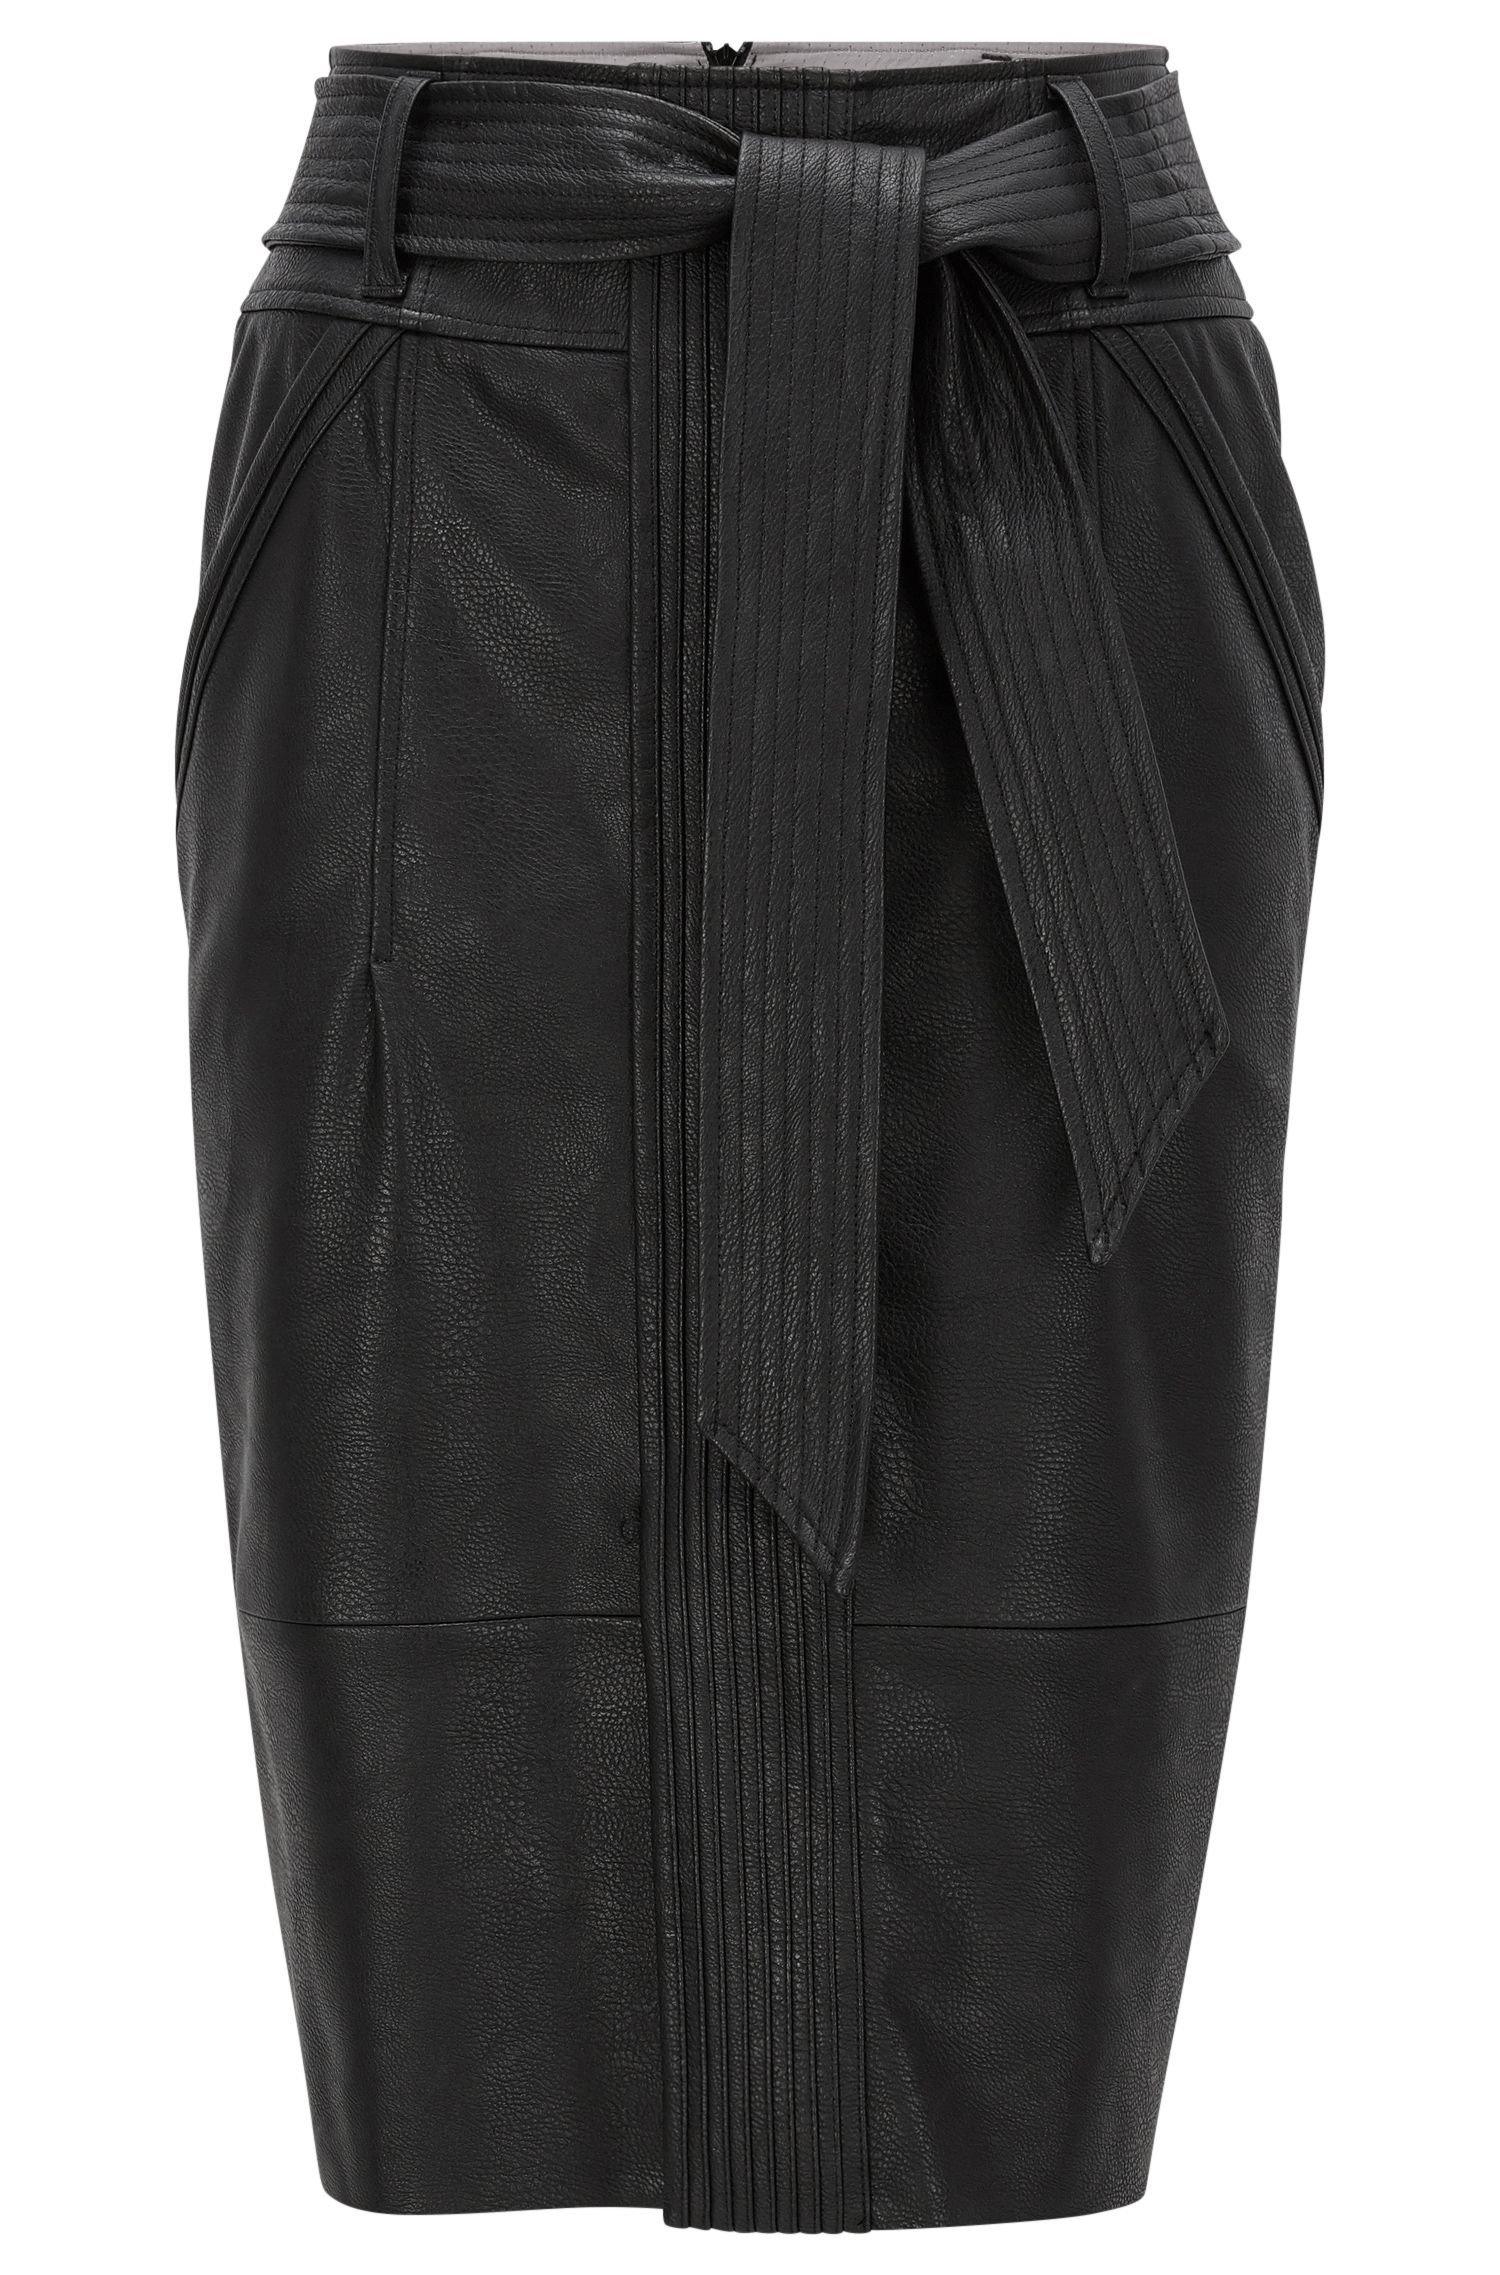 Pencil skirt in structured faux leather